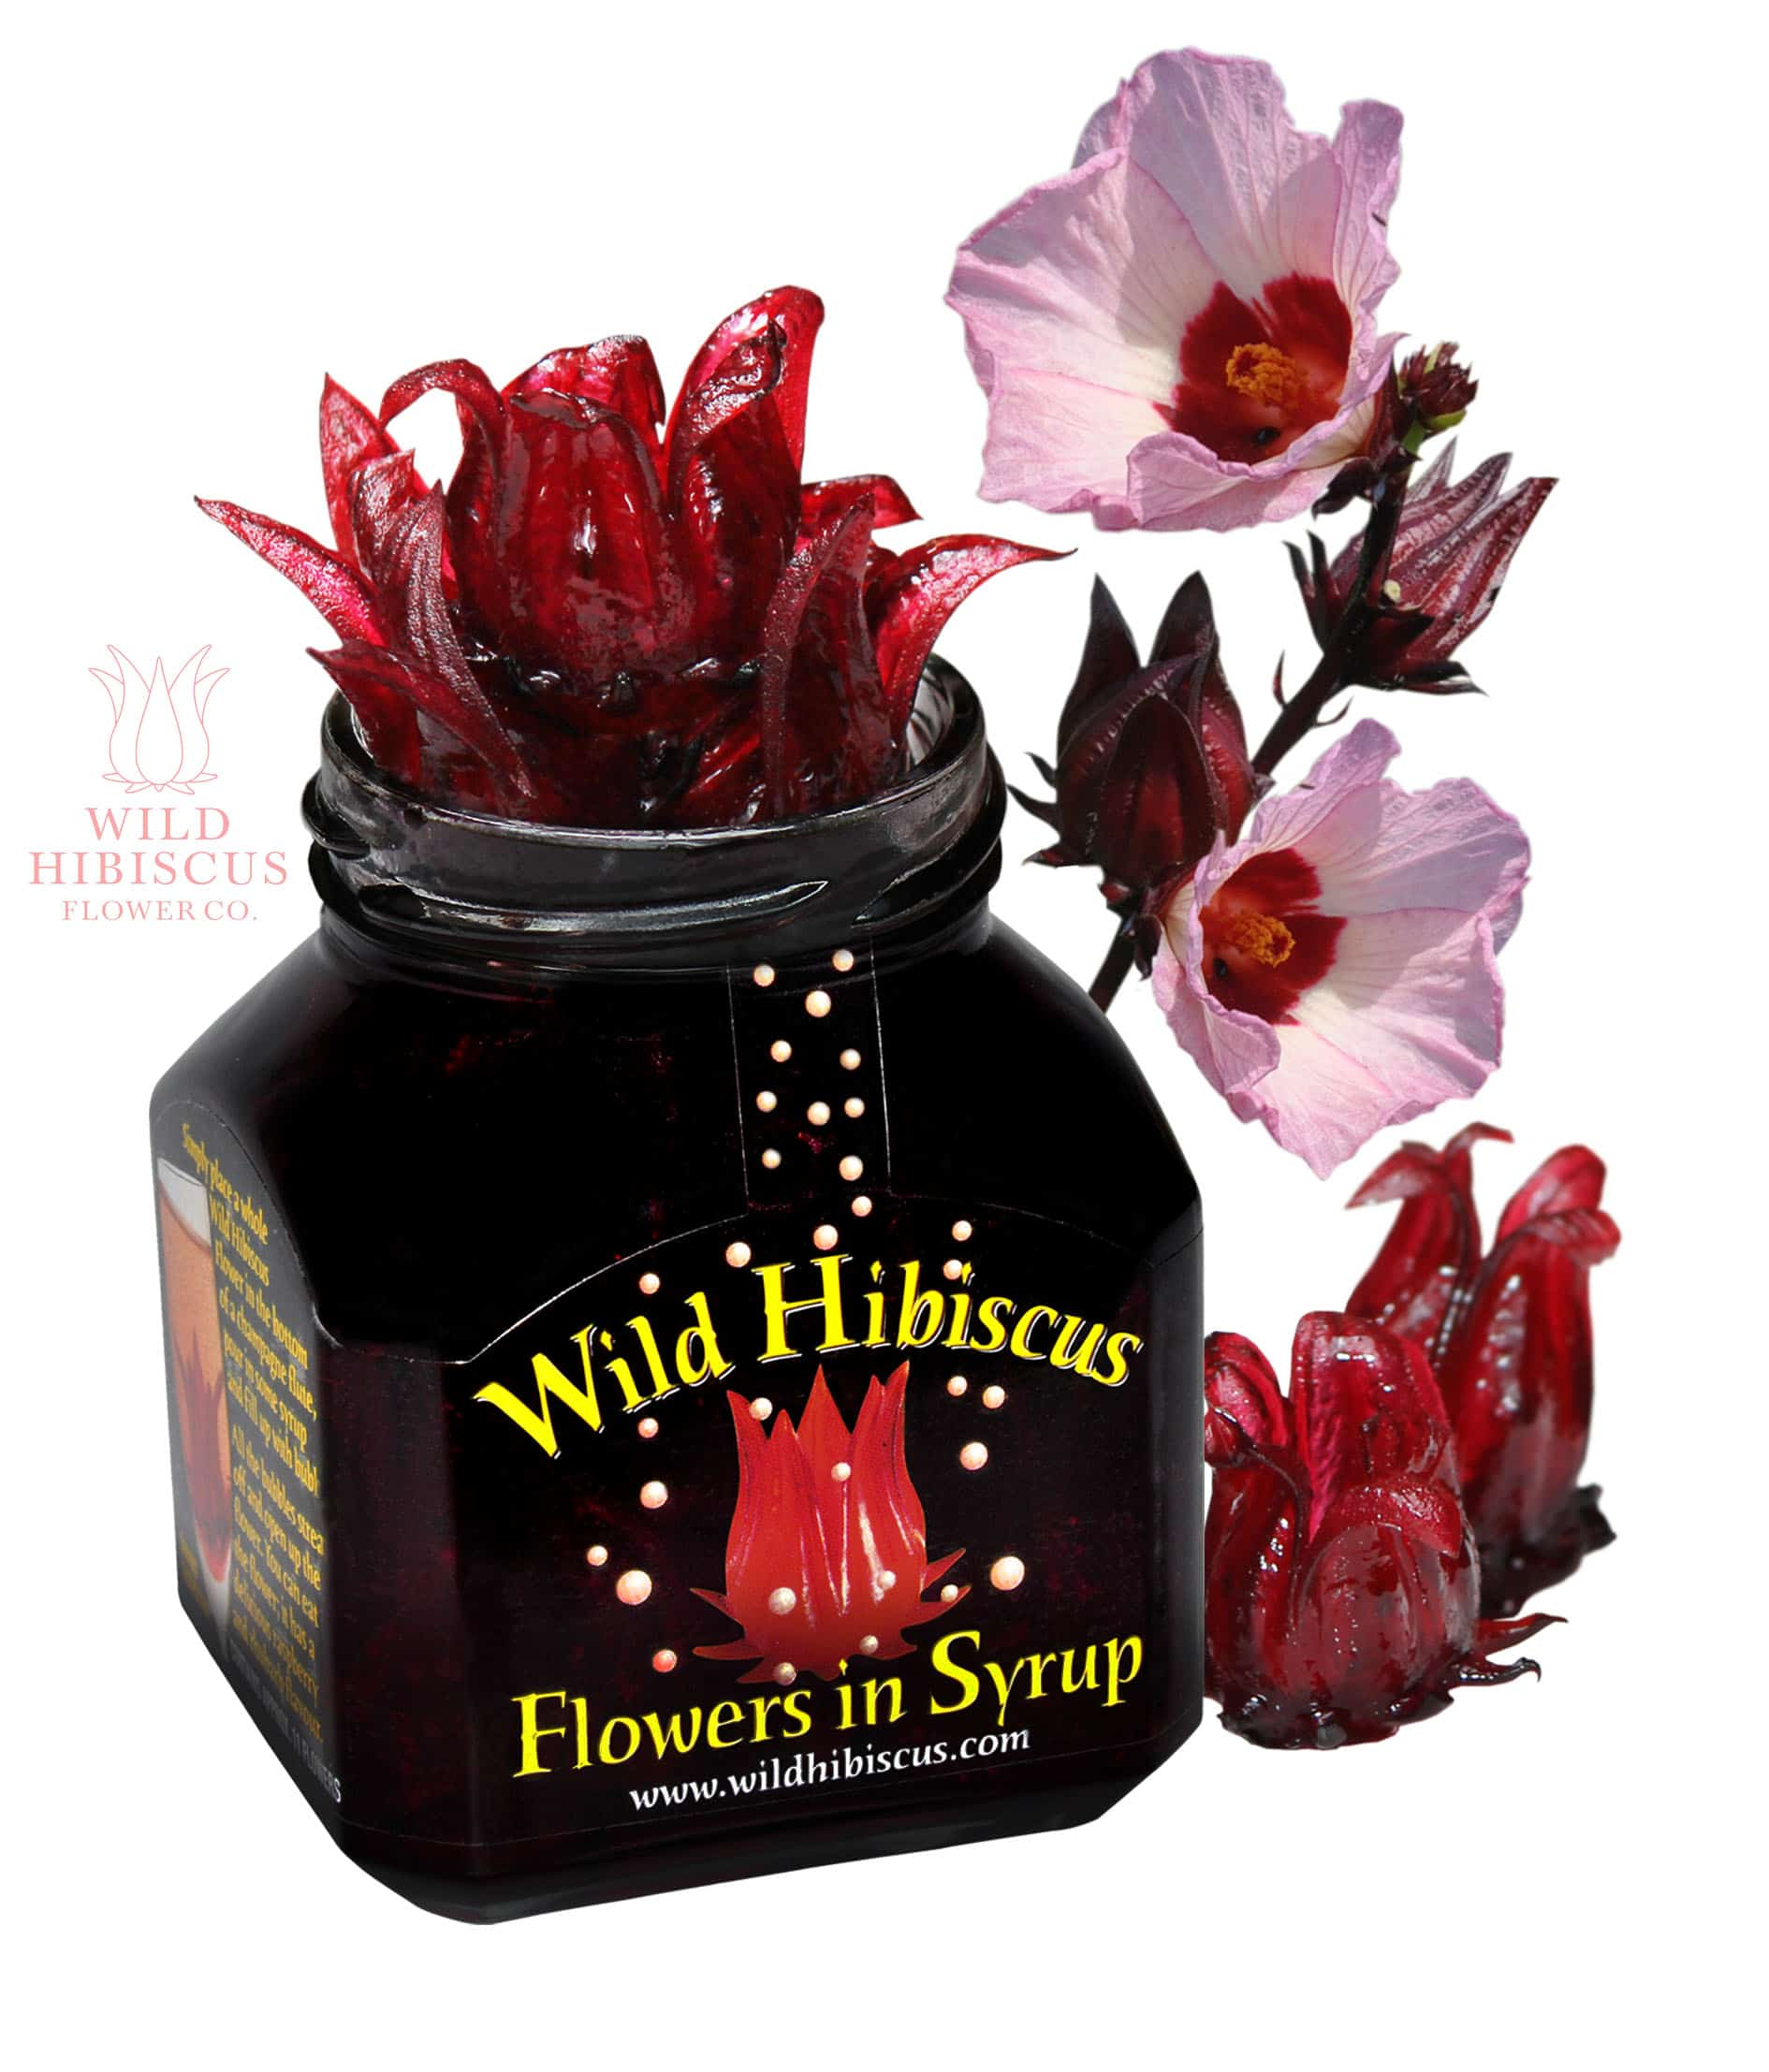 Wild Hibiscus Flower Co.